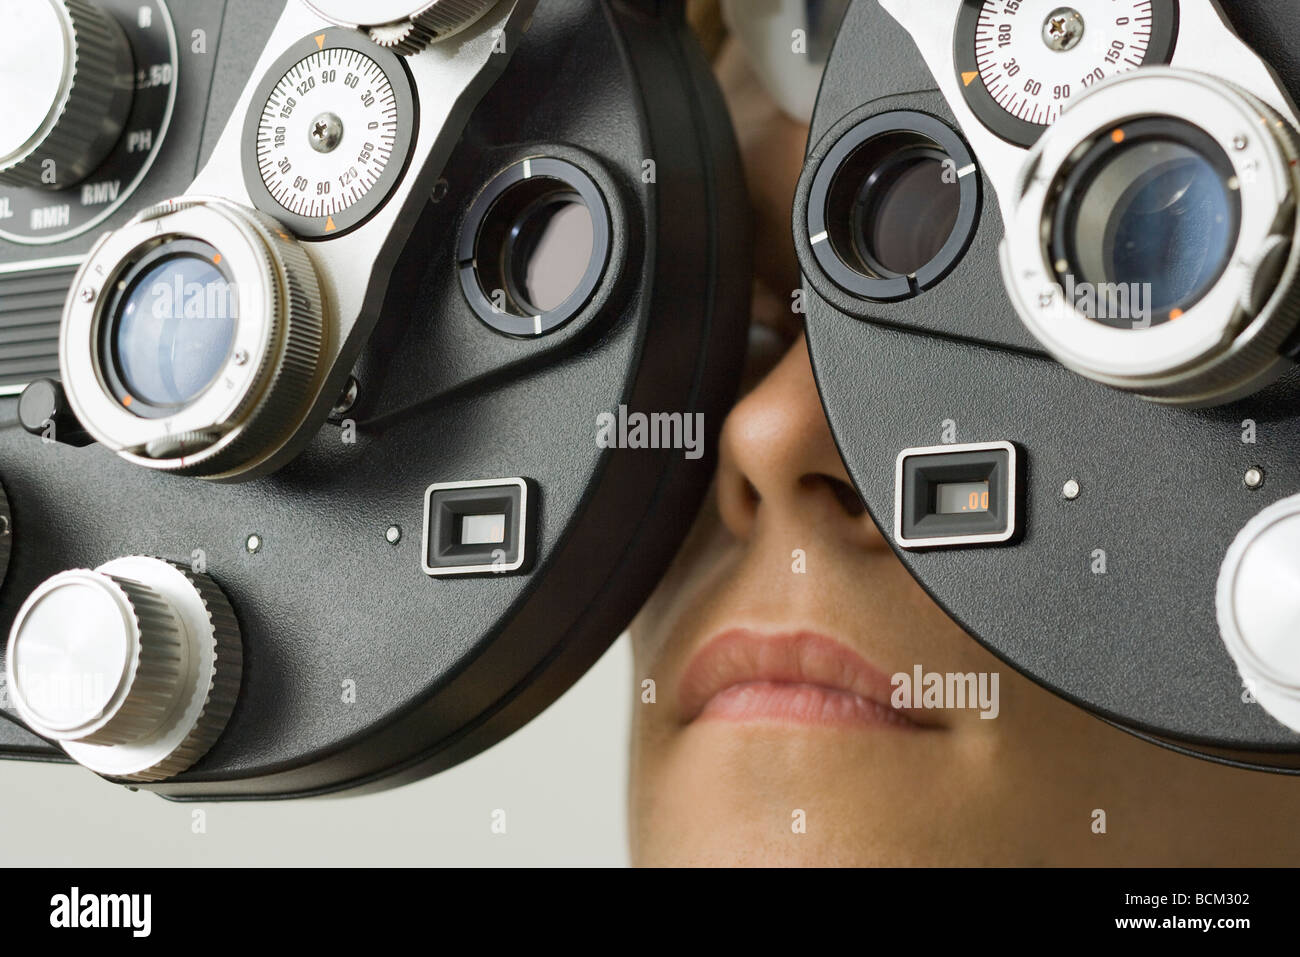 Patient looking into phoropter at eye doctor's office, extreme close-up - Stock Image